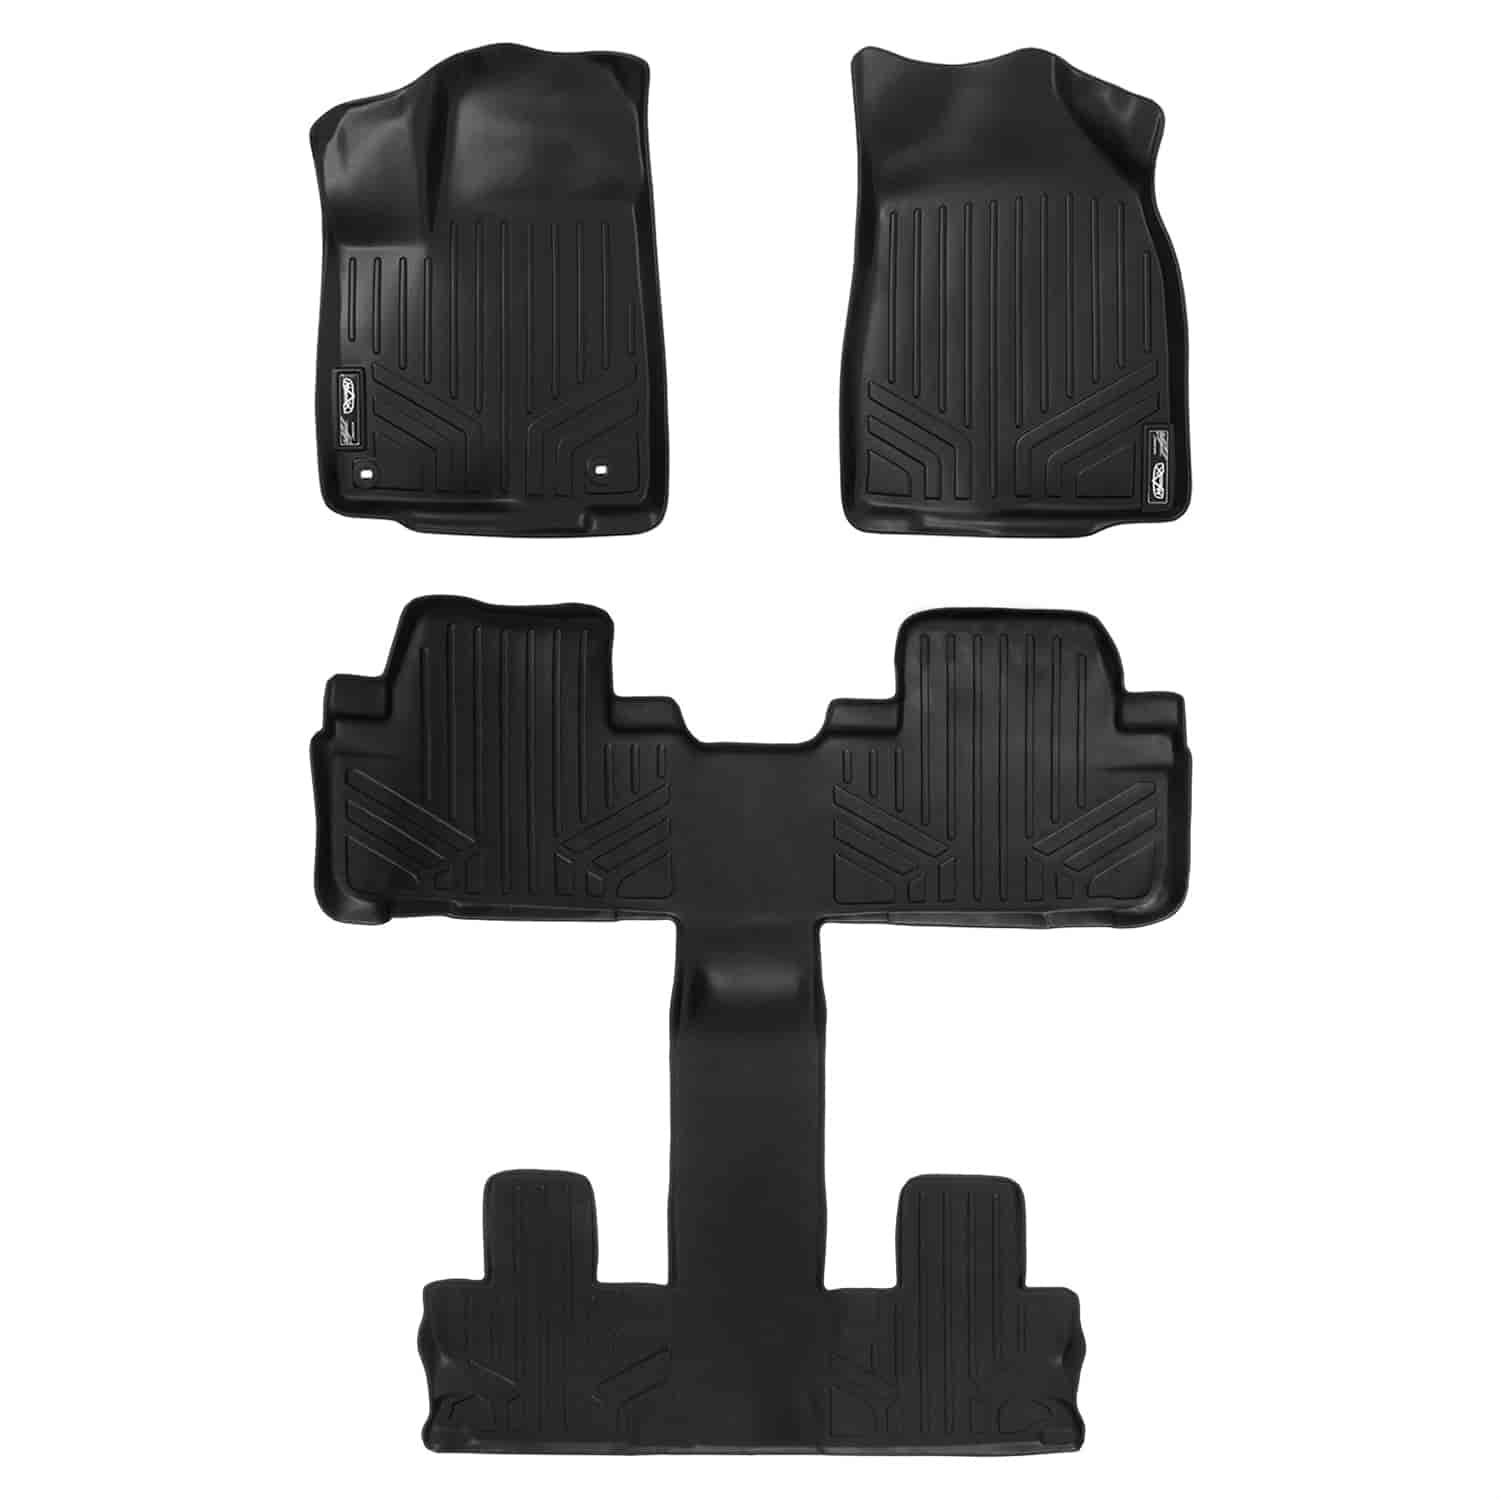 MAXLINER A0017//B0028 Floor Mats for Ford F-150 Super Crew Cab Black 2009-2010 Complete Set